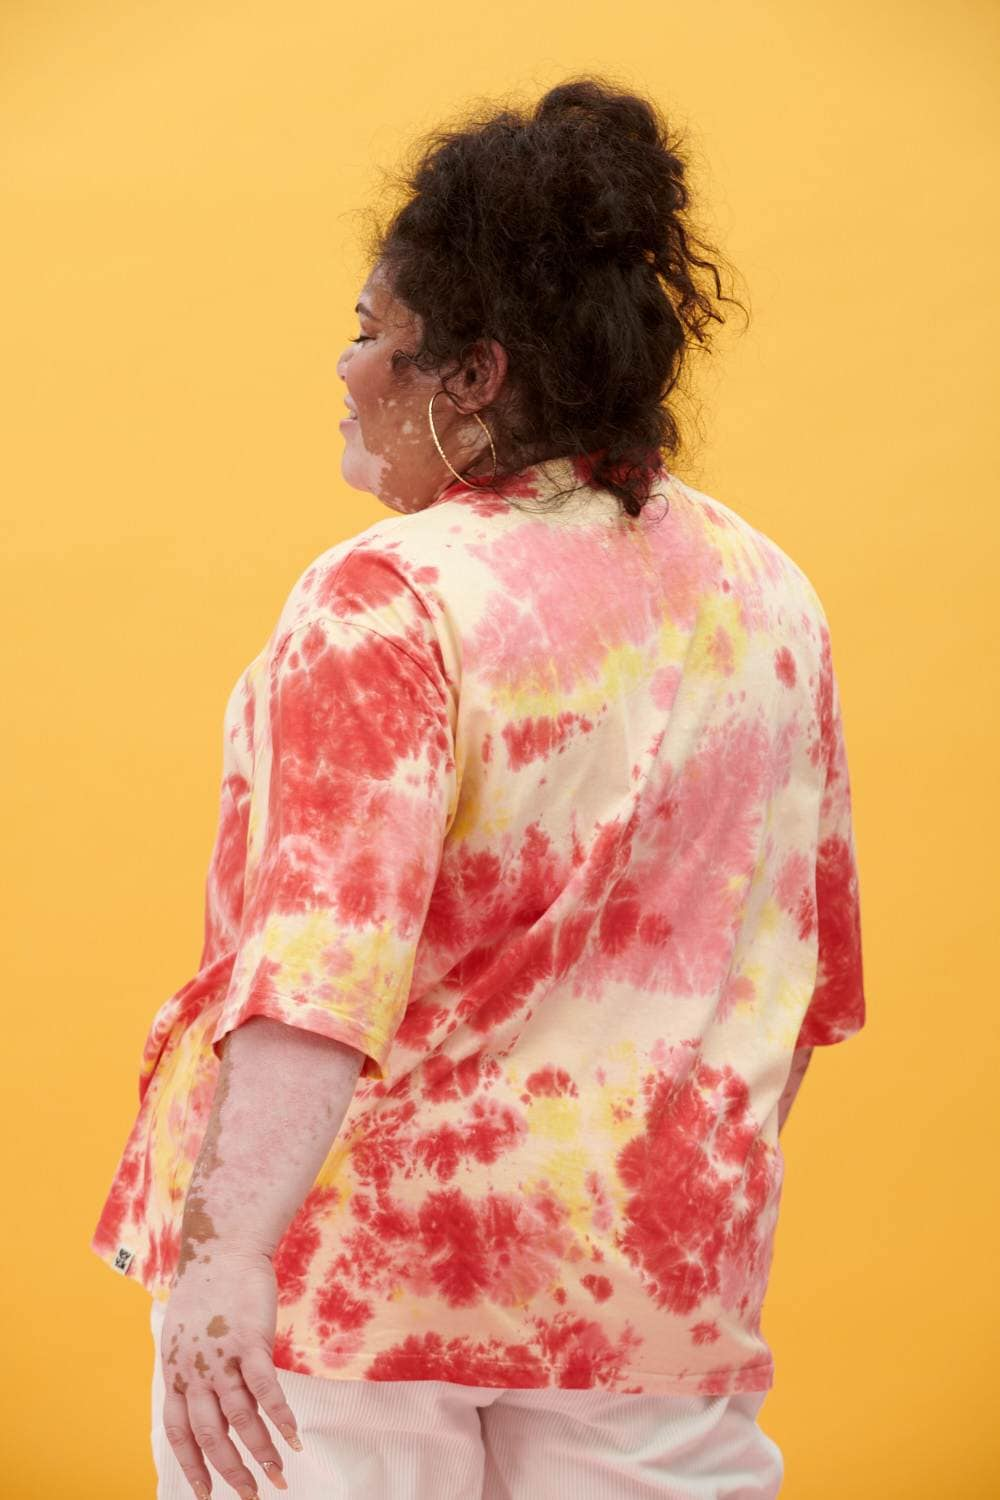 Lucy & Yak Tops 'Benny' Organic Cotton Tie Dye Tee in Yellow, Red & Pink